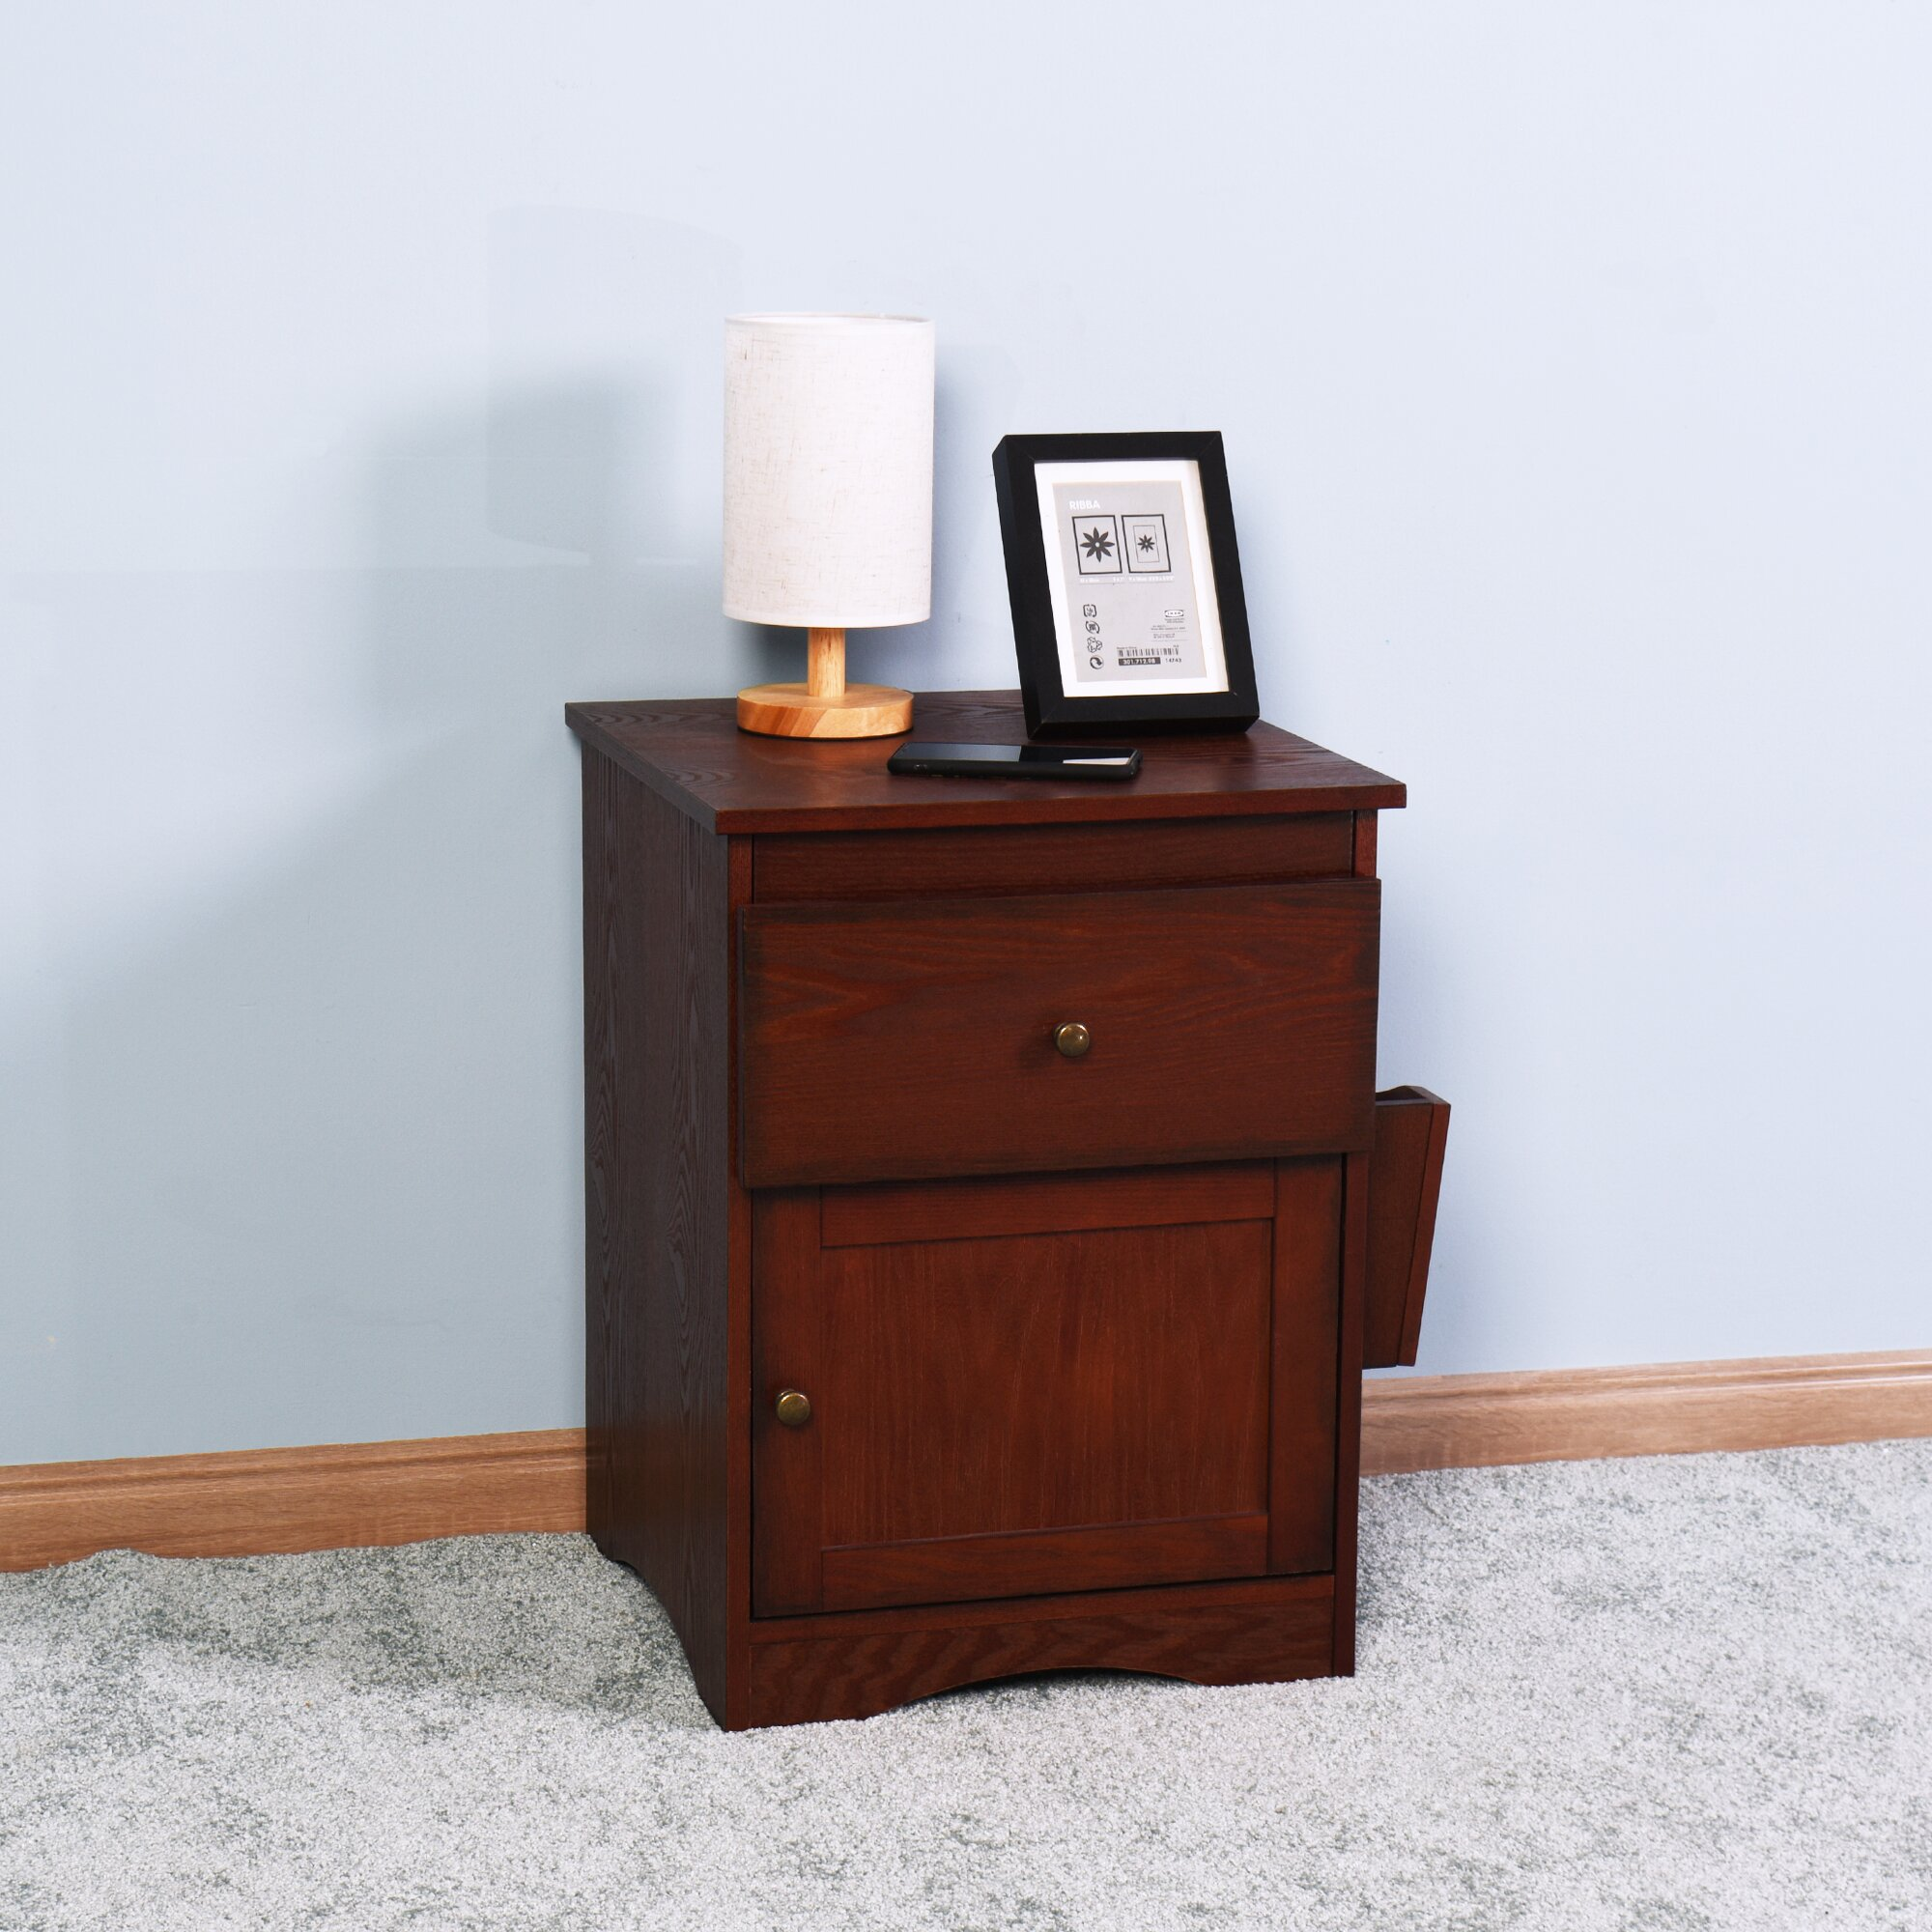 Floating Nightstands Free Shipping Over 35 Wayfair